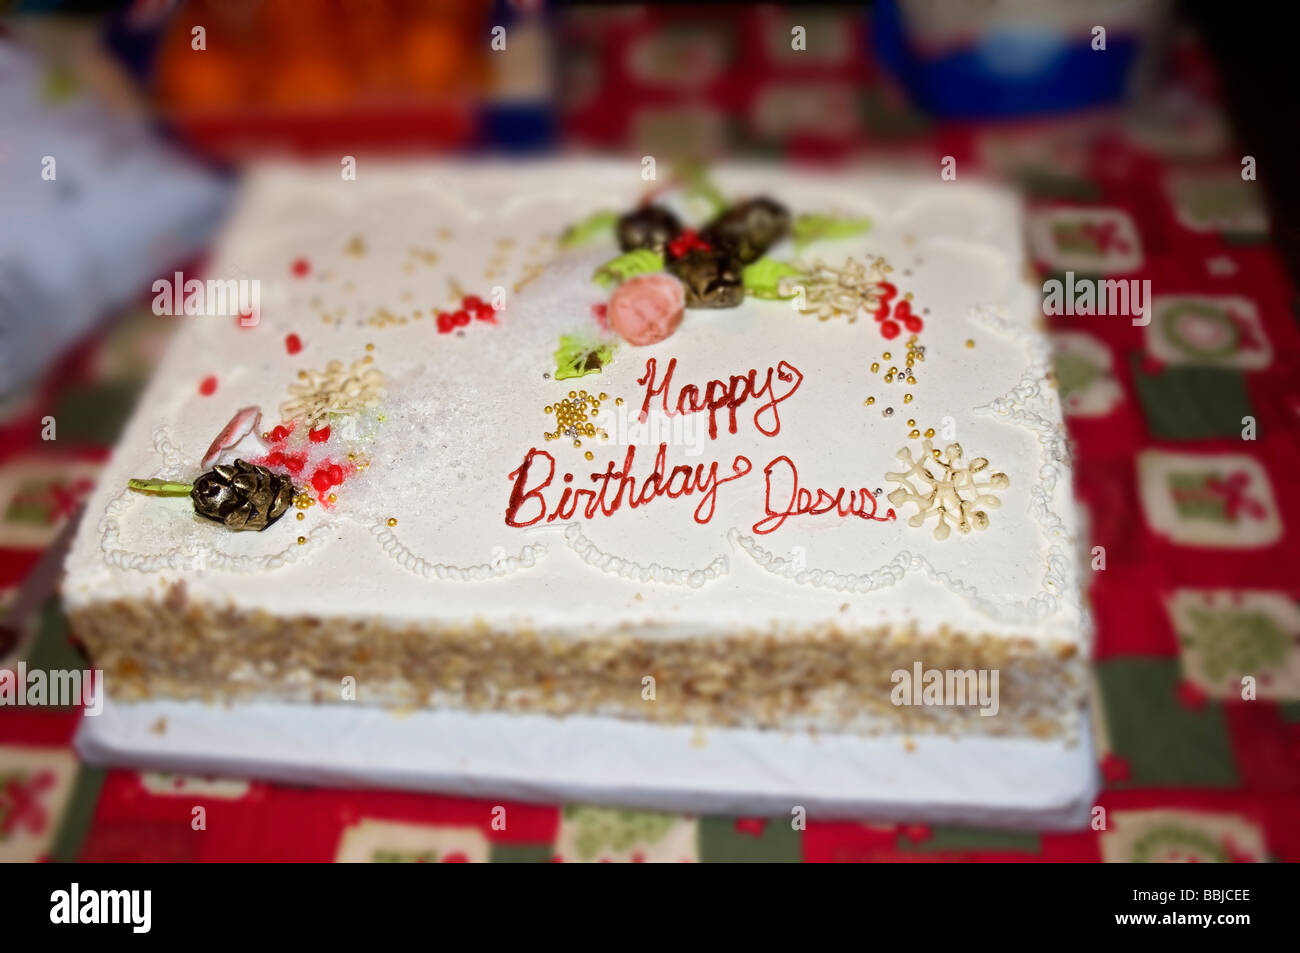 Enjoyable Happy Birthday Jesus Christmas Birthday Cake At Local Church Stock Funny Birthday Cards Online Alyptdamsfinfo